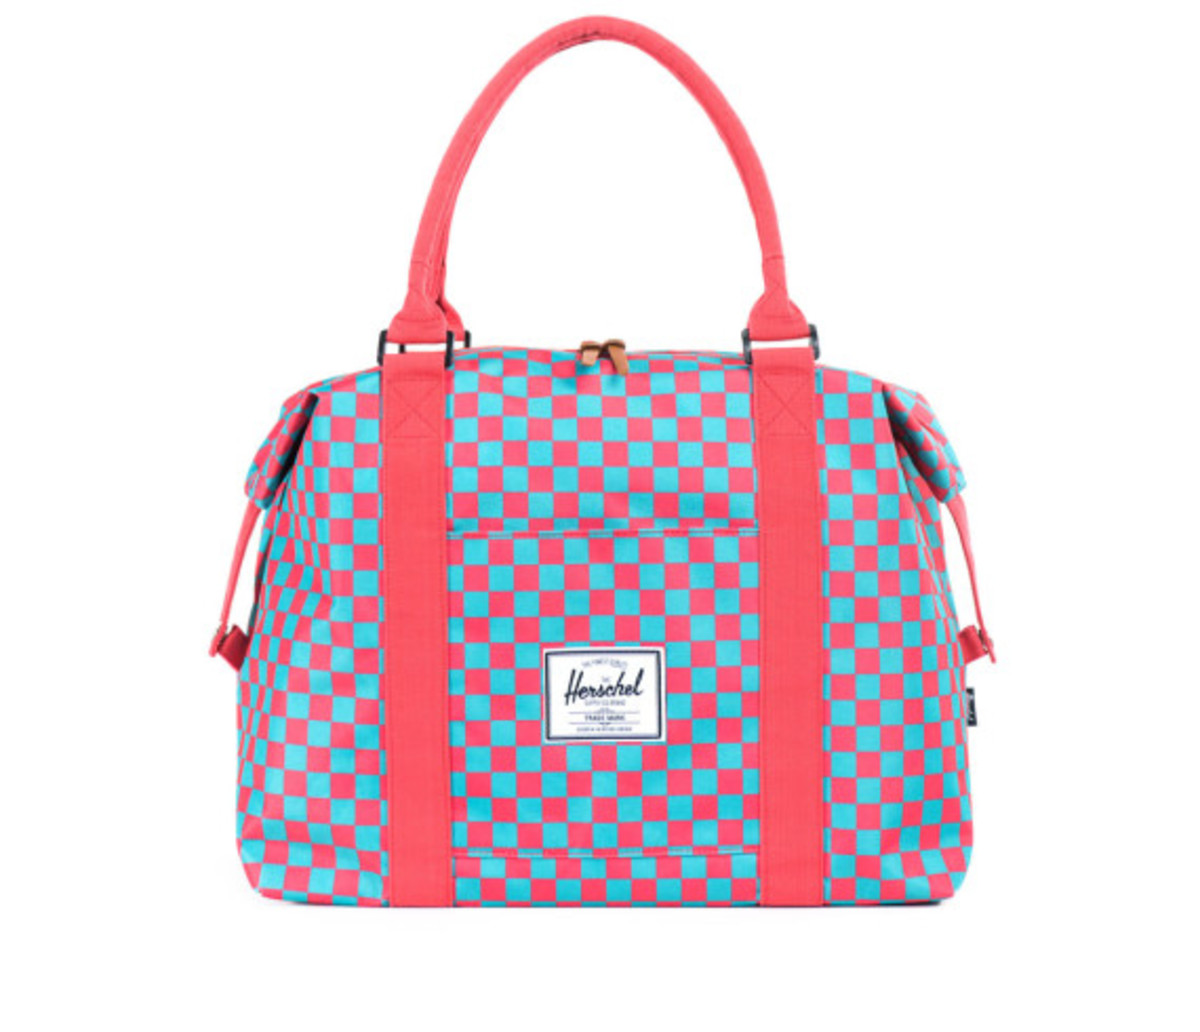 herschel-supply-co-summer-2014-picnic-print-collection-05